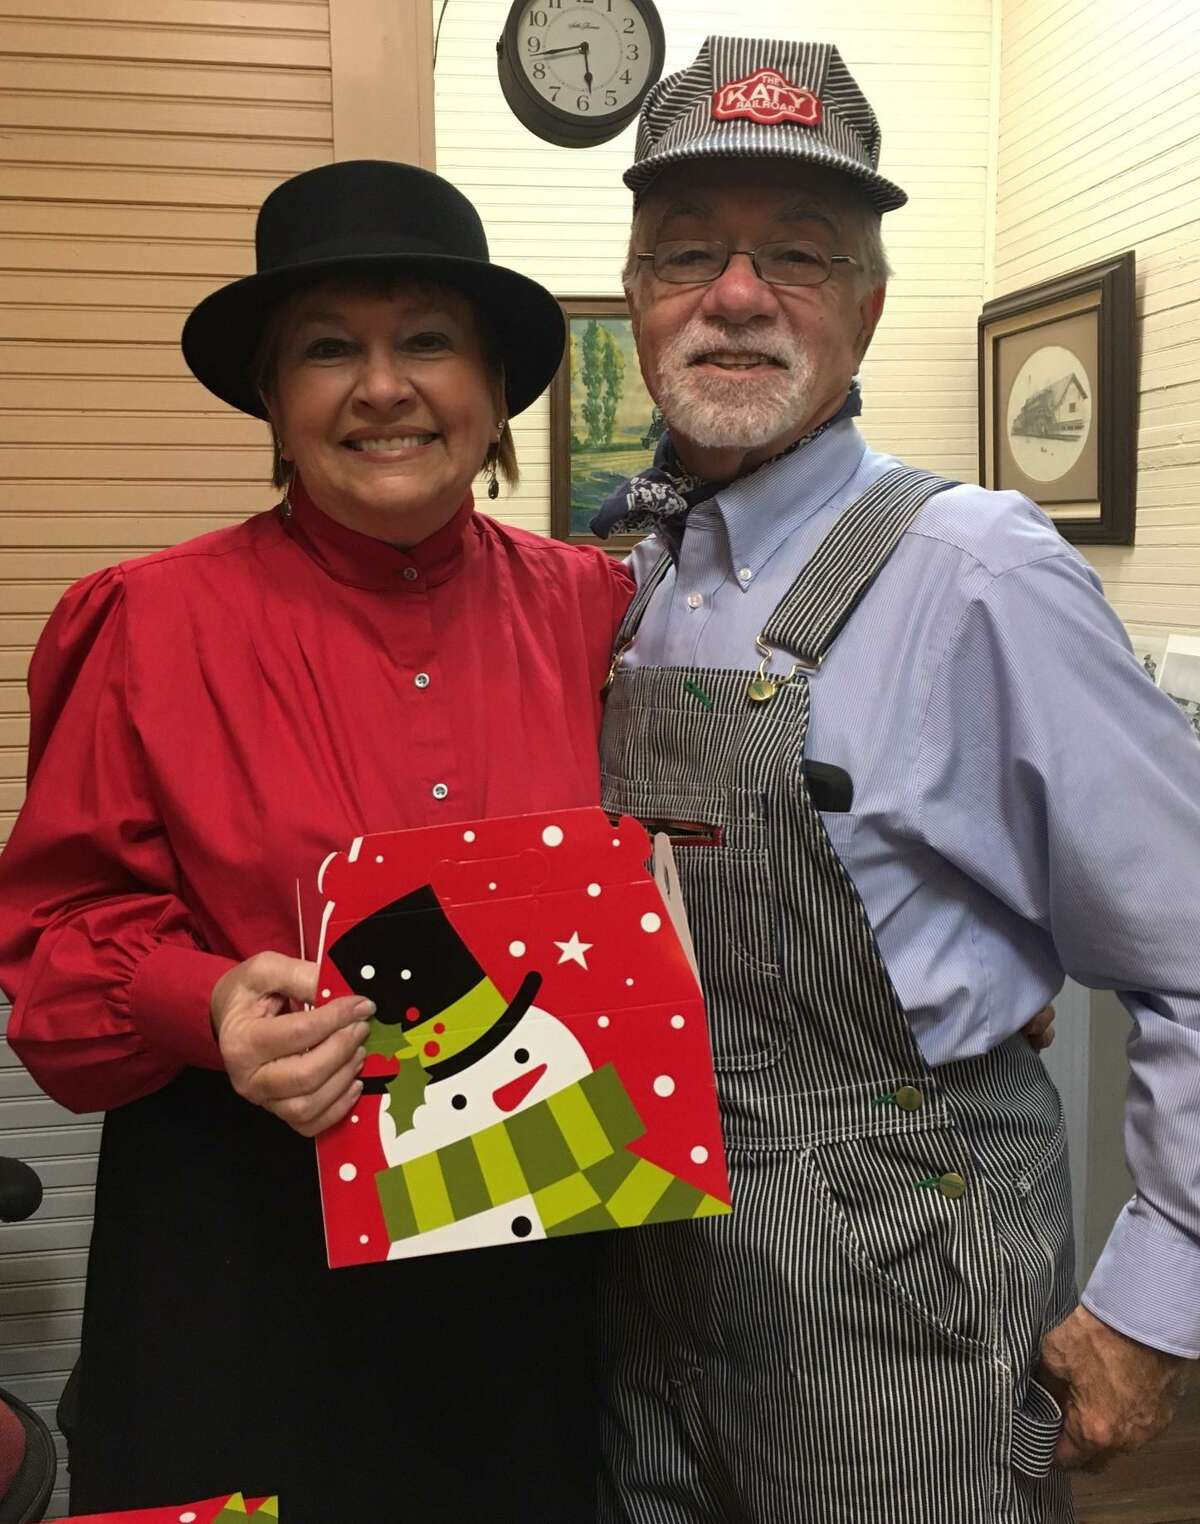 Katy Heritage Society members Marilyn and David Frishman provided boxes at the Katy Depot for people to fill with cookies as they participated in the first annual Christmas Heritage Tour and Cookie Walk on Dec 5.